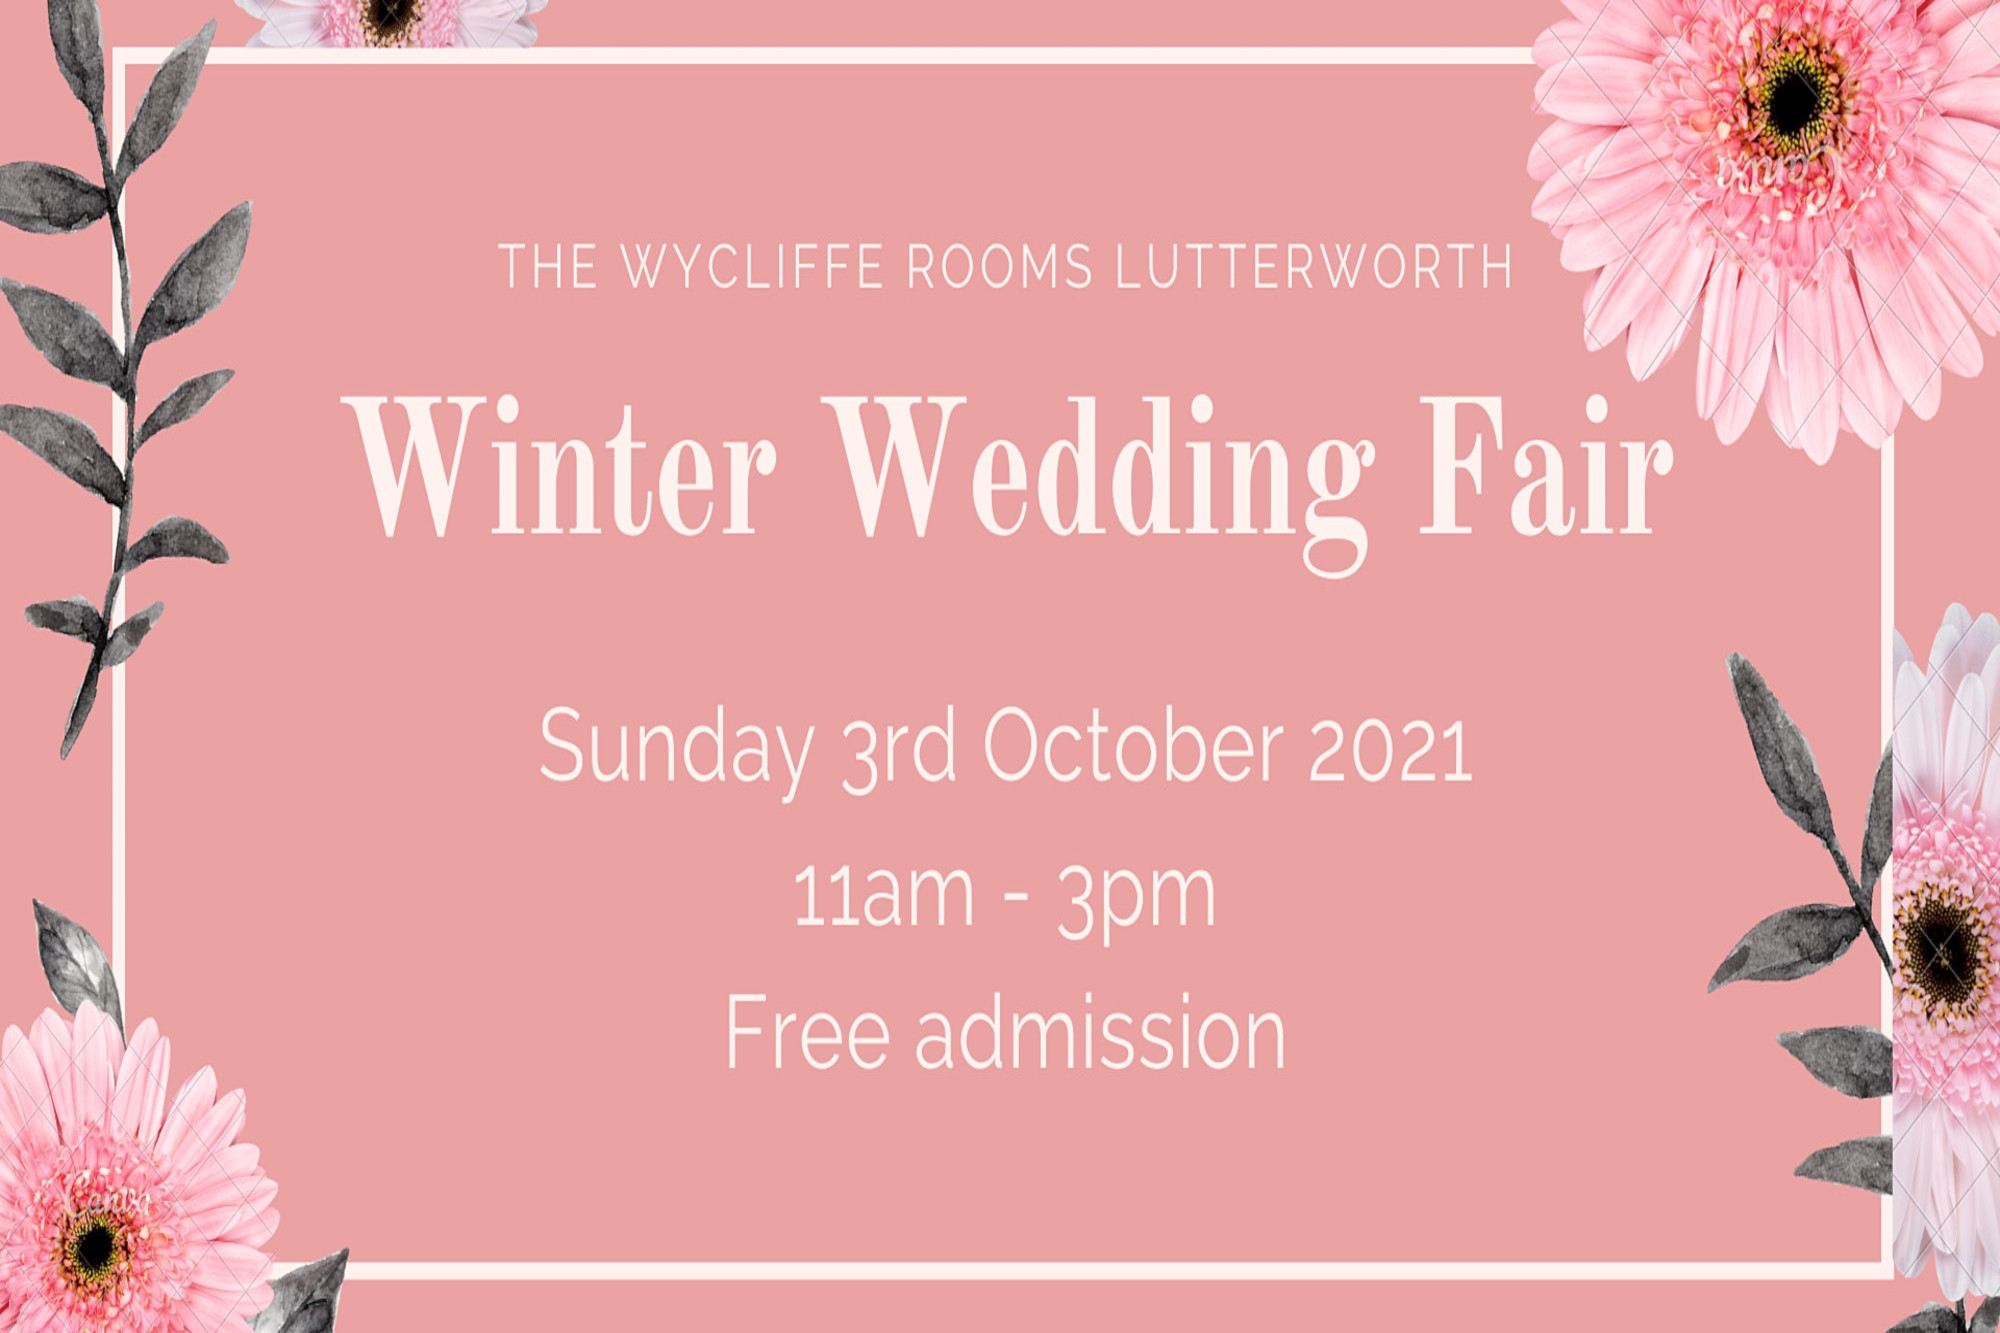 Our Winter Wedding Fair At The Wycliffe